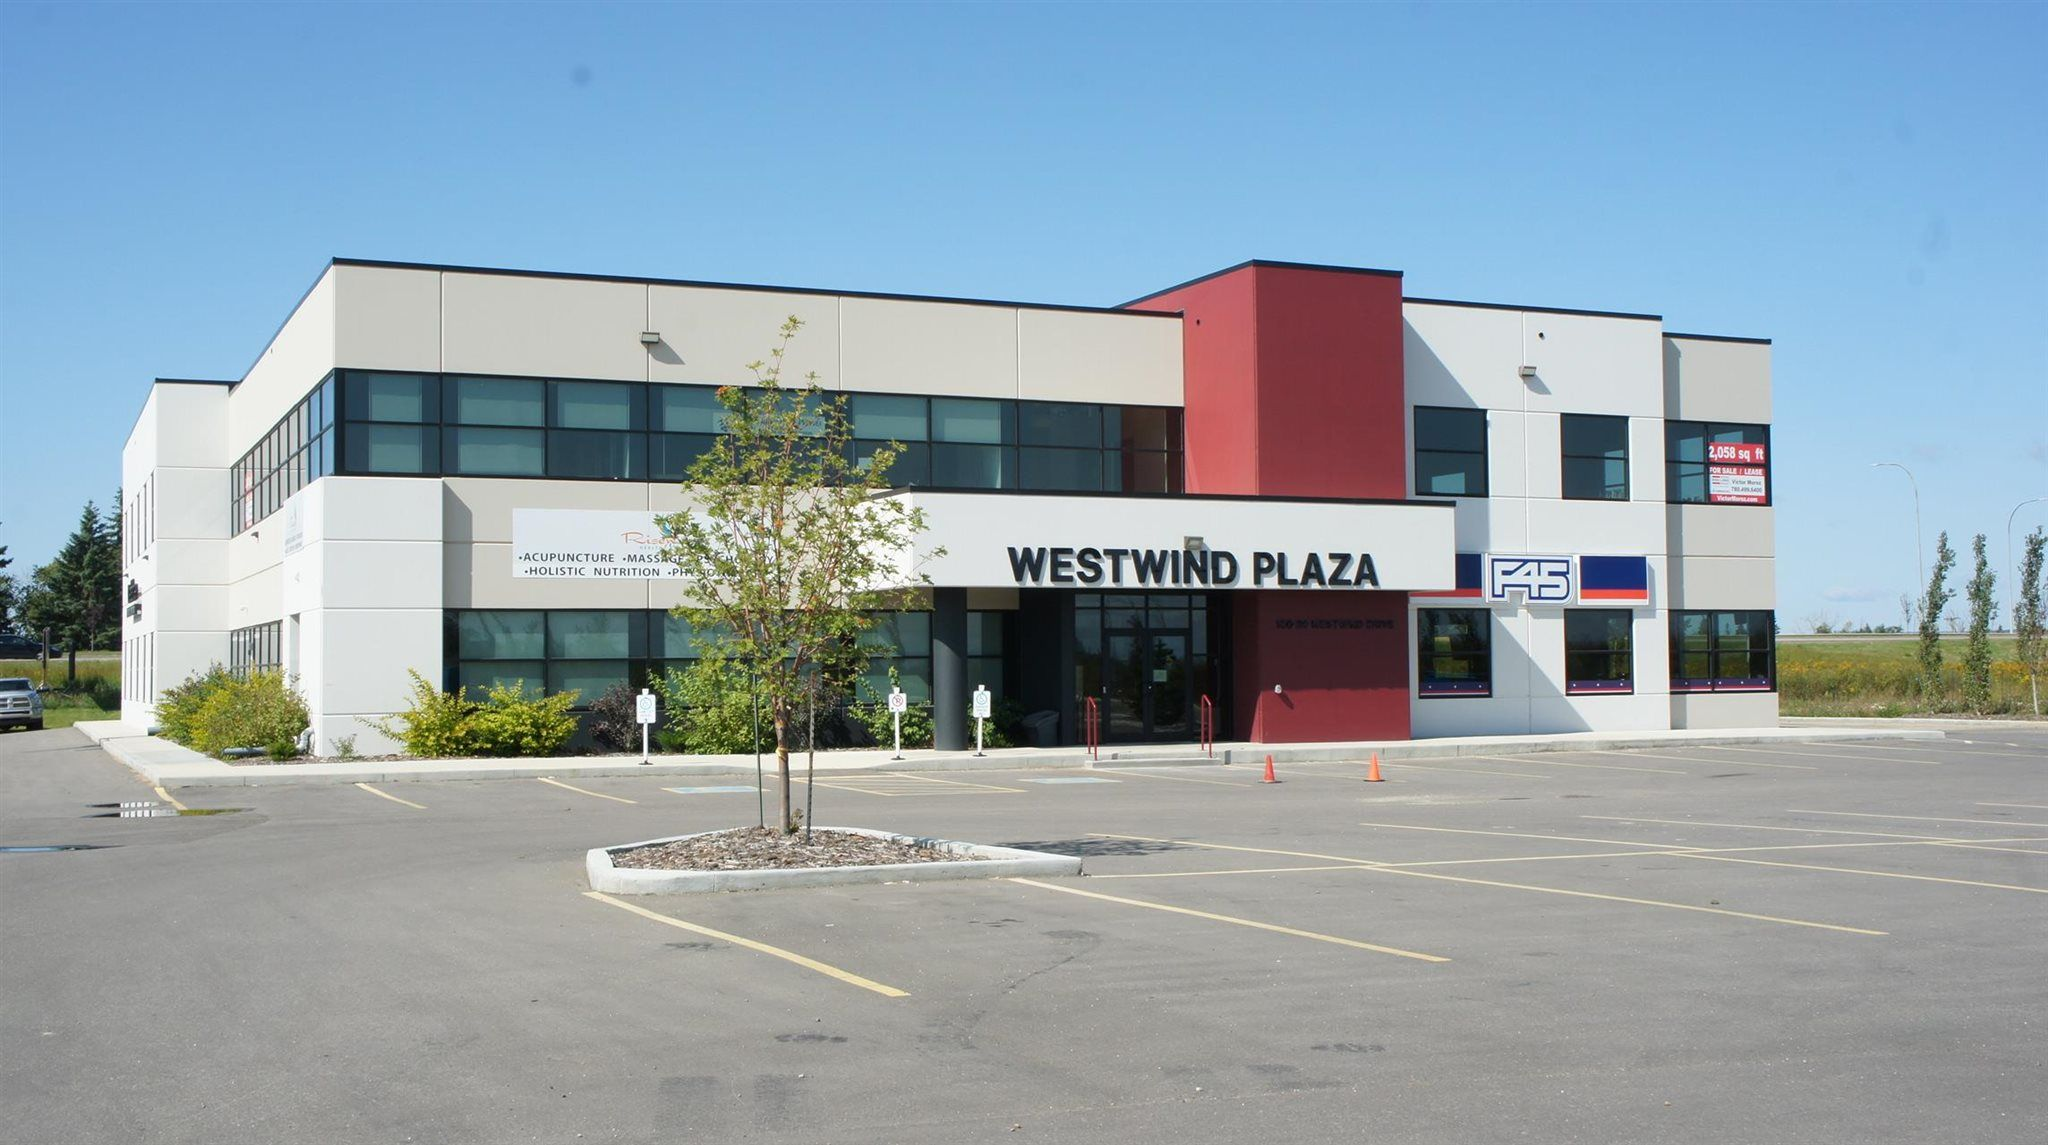 Main Photo: 224 20 WESTWIND Drive: Spruce Grove Office for sale or lease : MLS®# E4252564